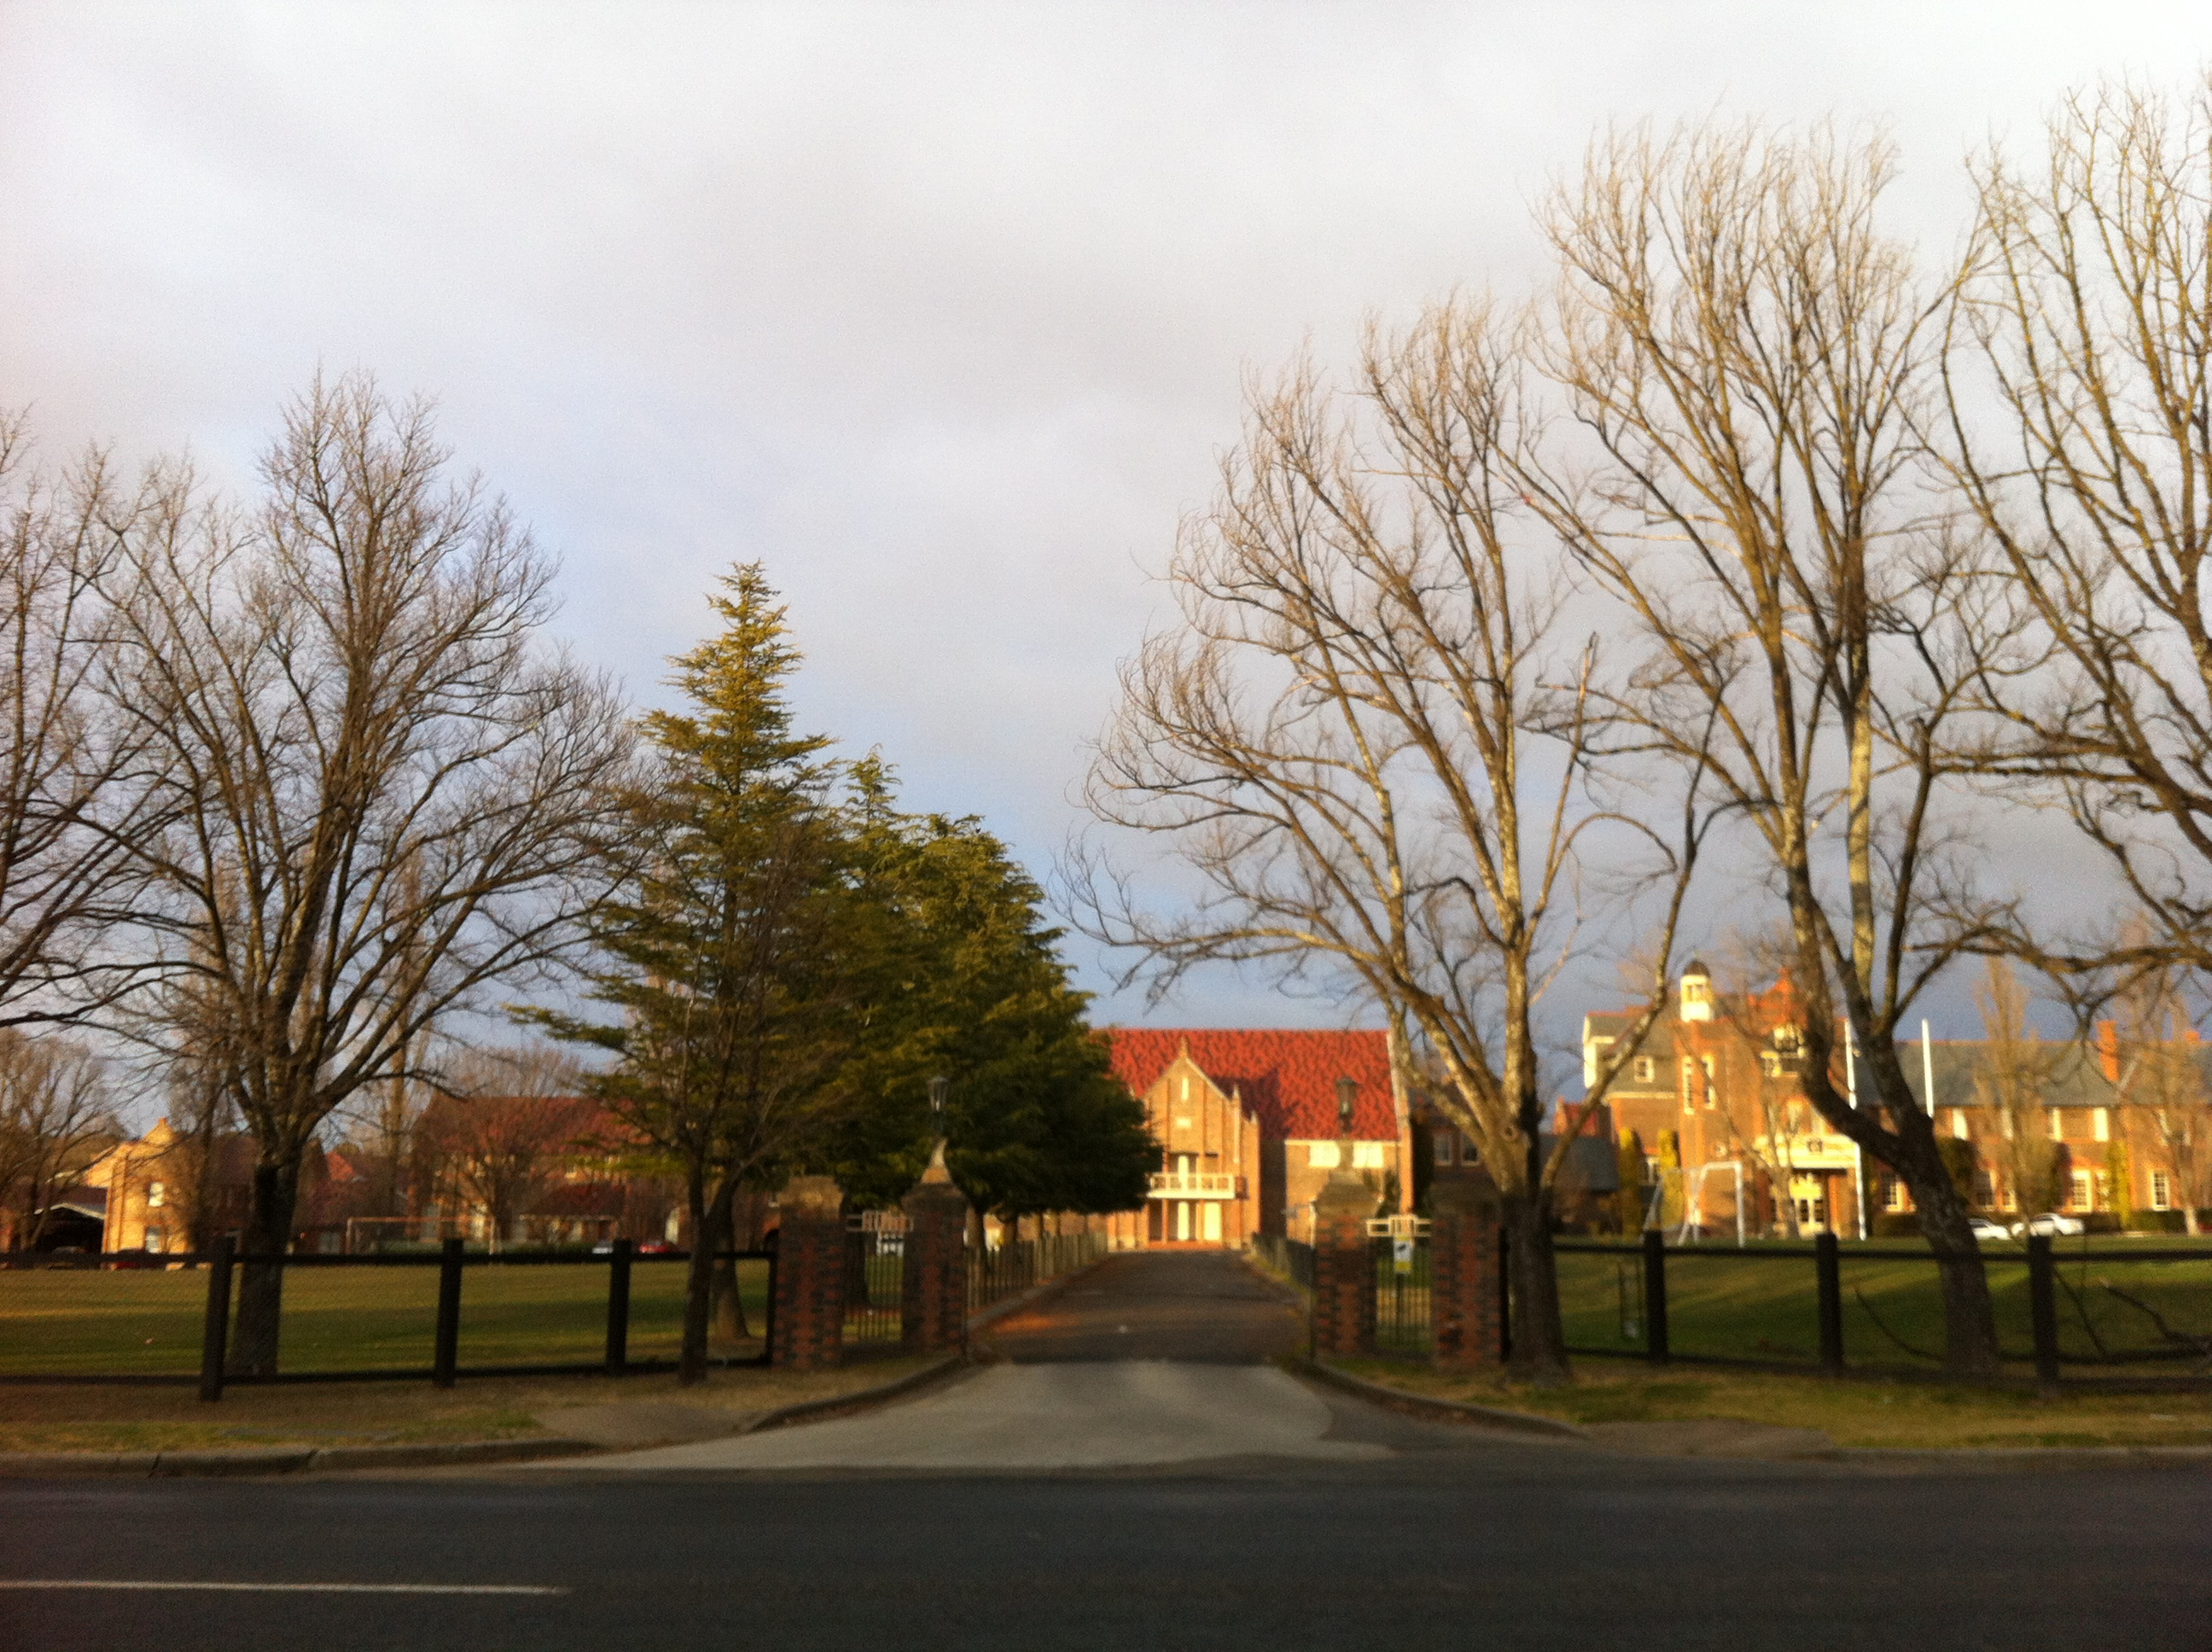 The Armidale School, July 2012